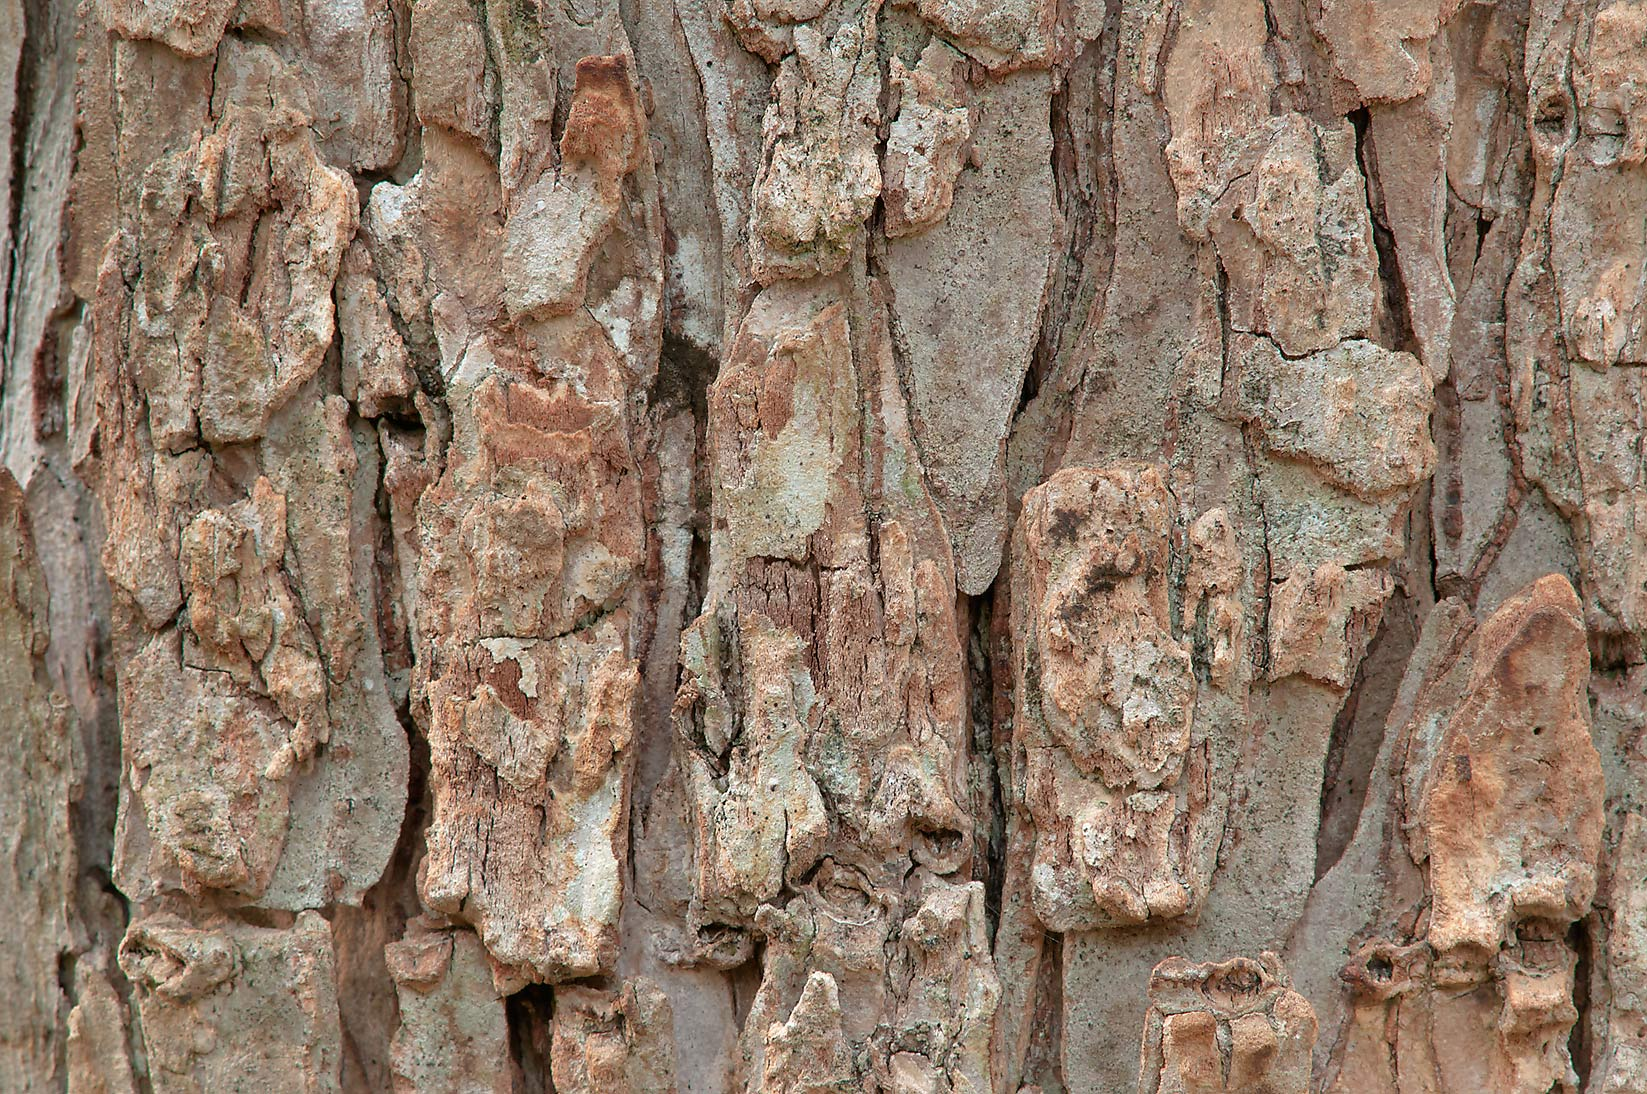 Tree bark with sapsucker holes in Lick Creek Park. College Station, Texas